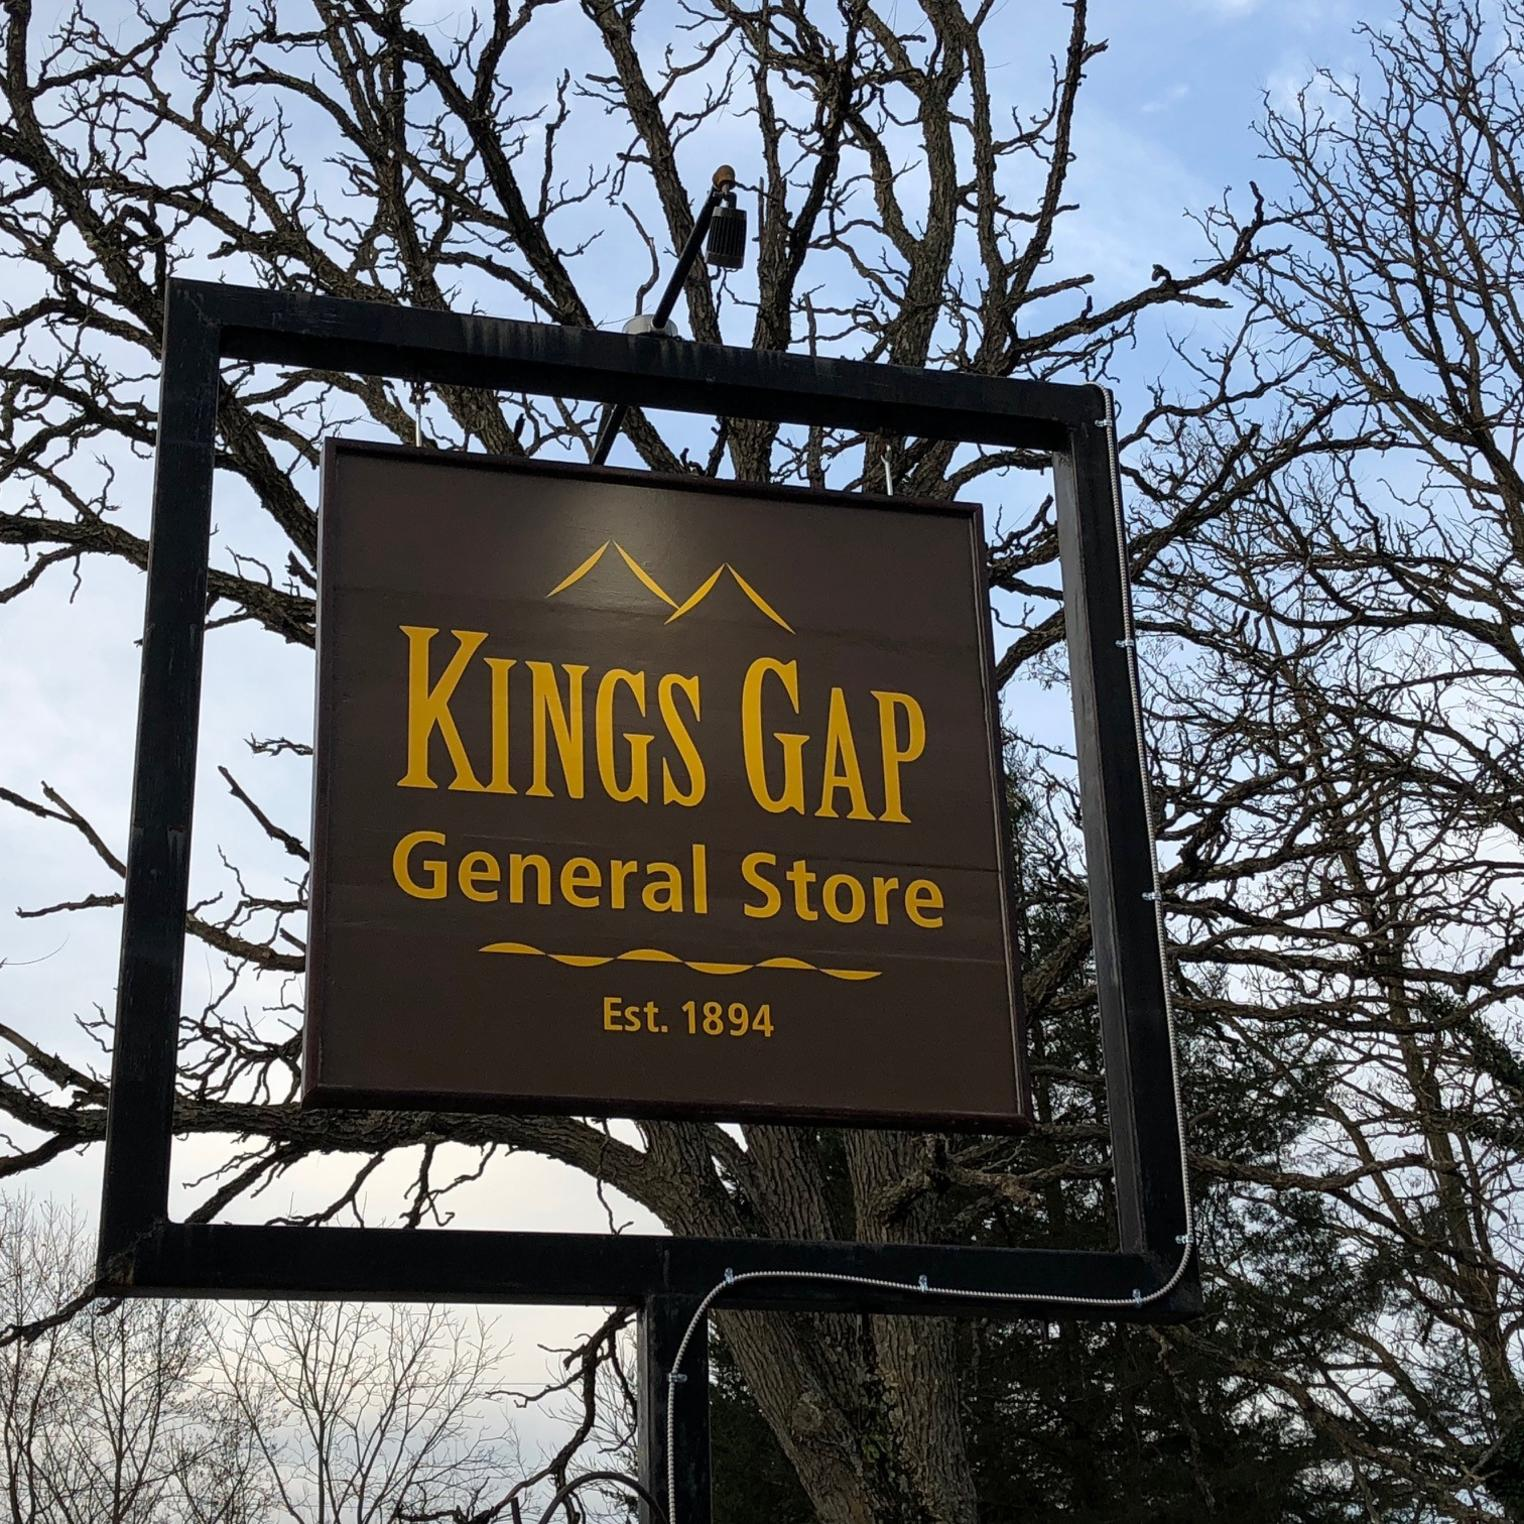 Kings Gap General Store